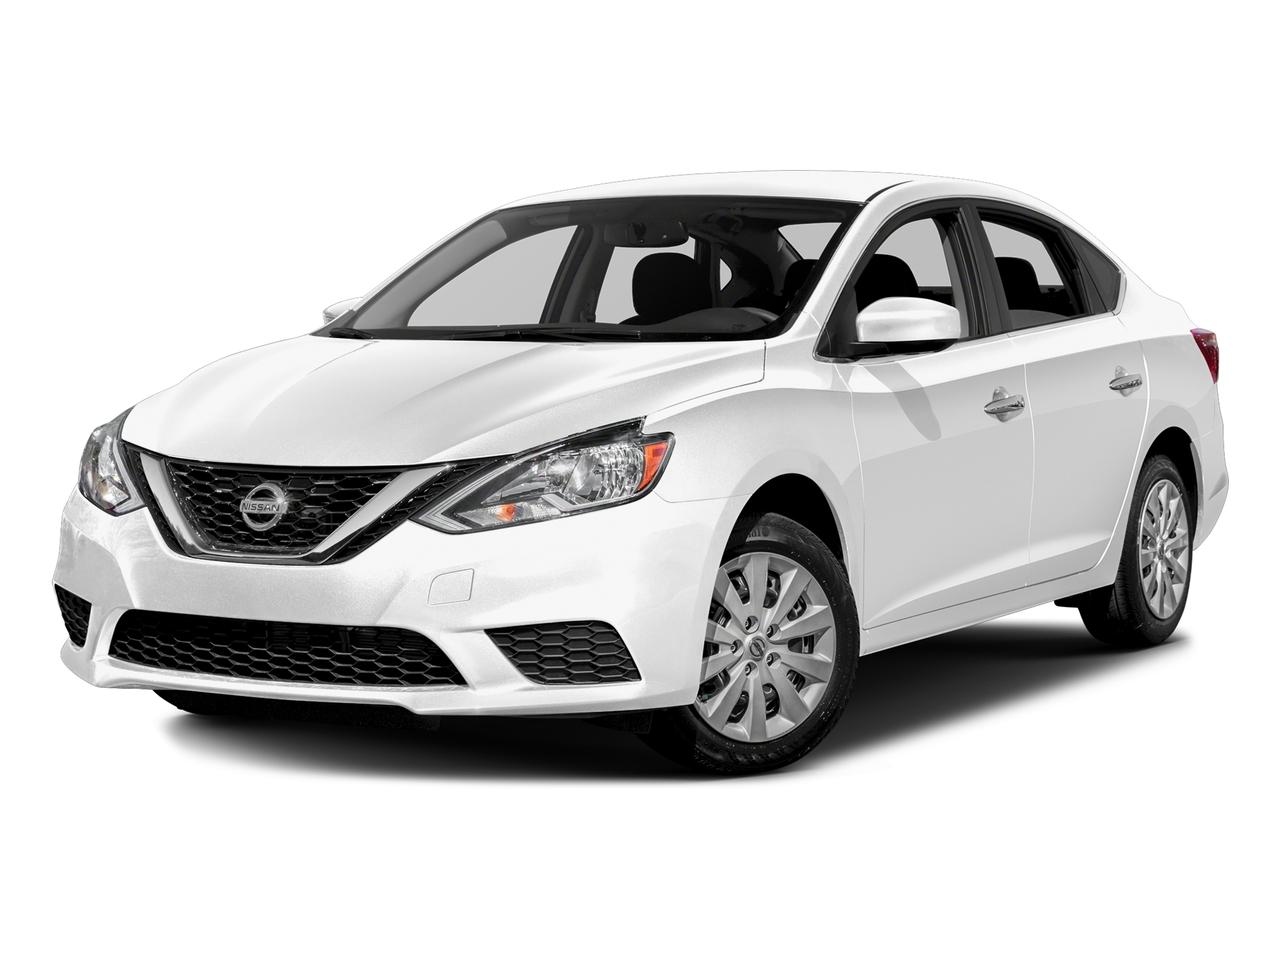 2017 Nissan Sentra Vehicle Photo in Mission, TX 78572